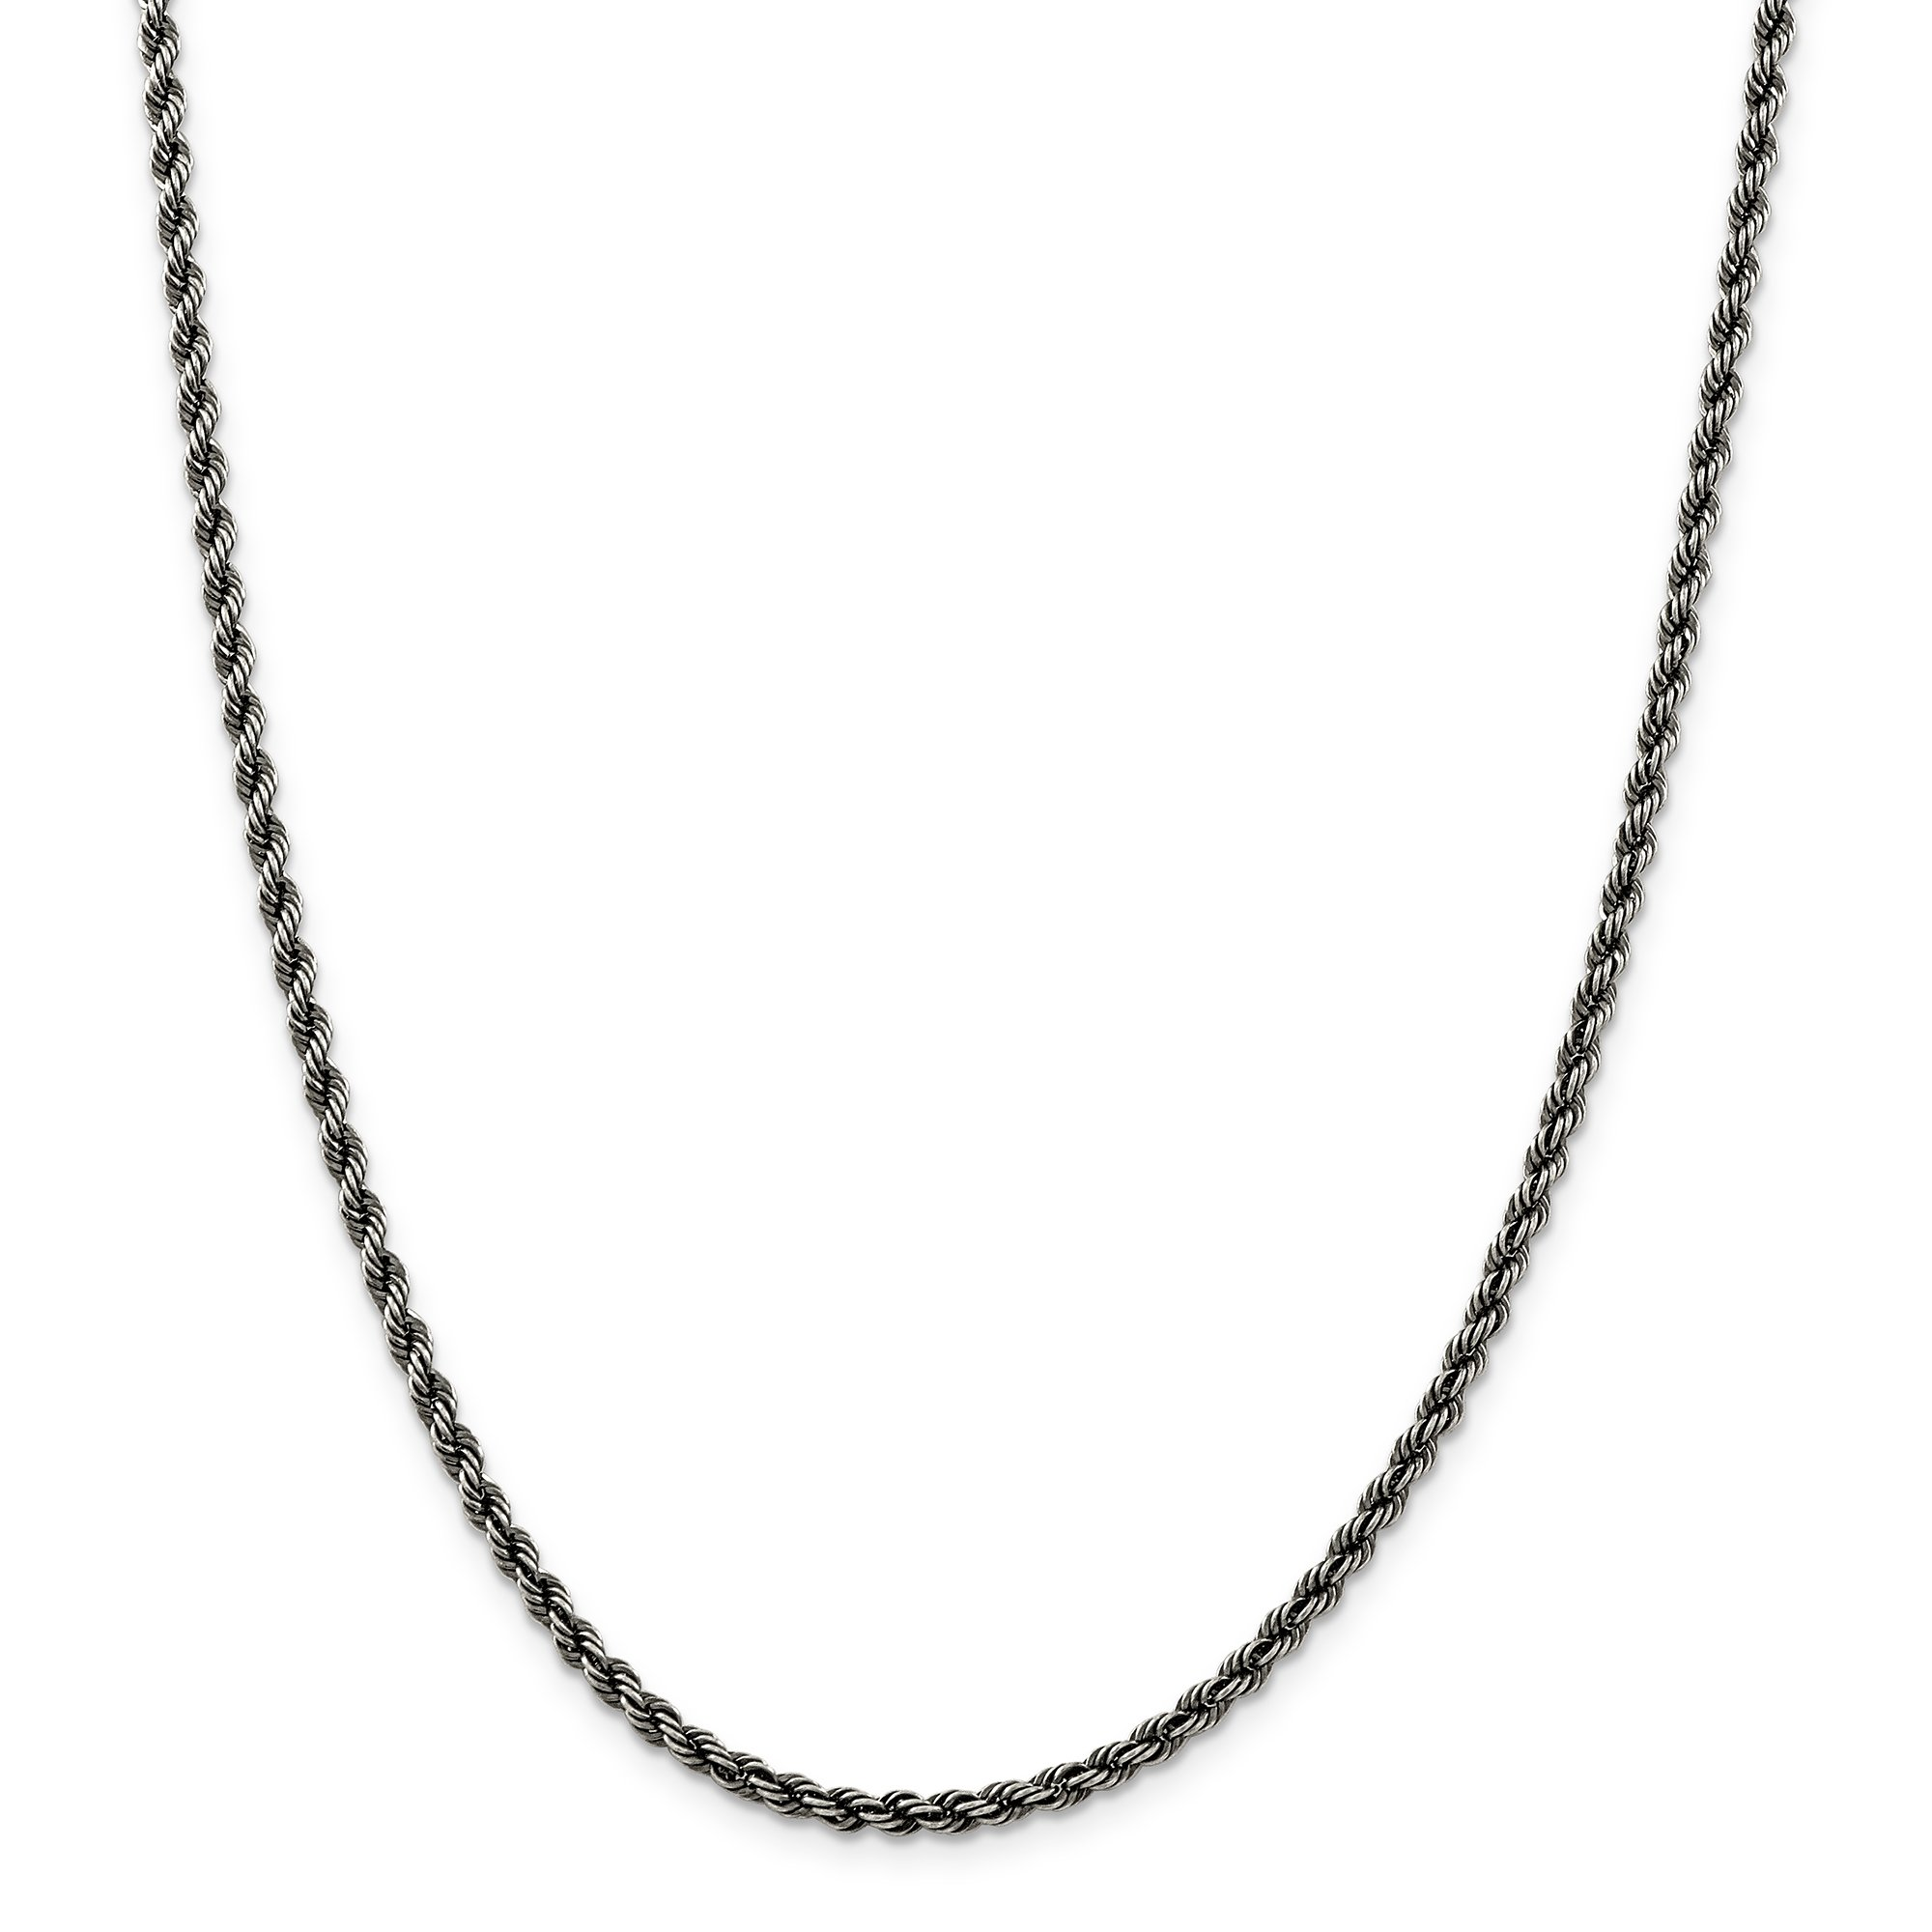 ICE CARATS 925 Sterling Silver Ruthenium 3mm Link Rope Chain Necklace 24 Inch Fine Jewelry Gift Set For Women Heart